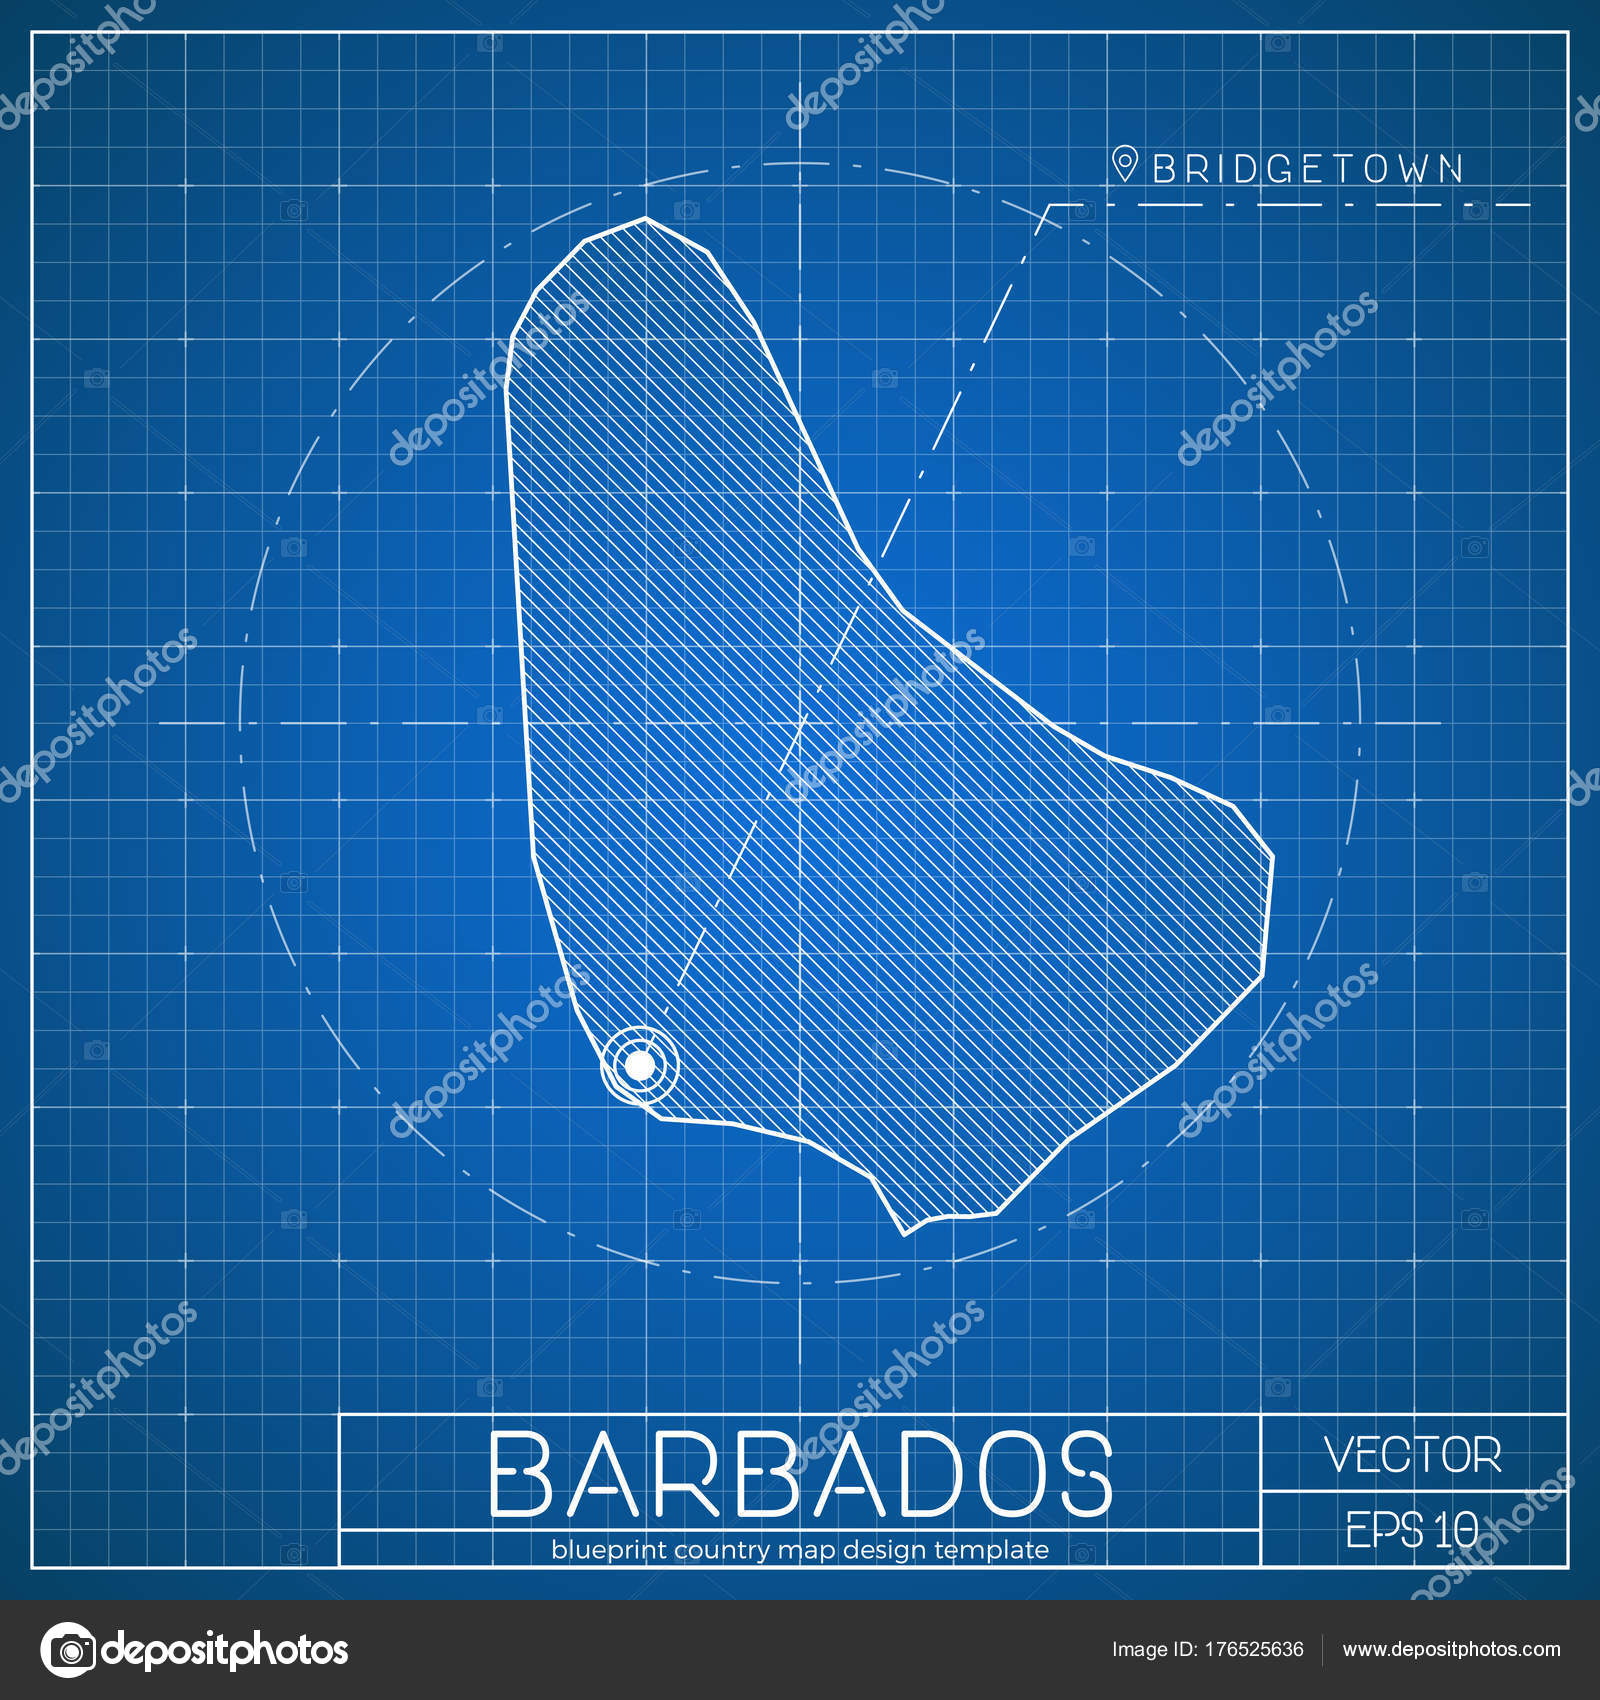 Barbados blueprint map template with capital city bridgetown marked barbados blueprint map template with capital city bridgetown marked on blueprint barbadian map stock vector malvernweather Images